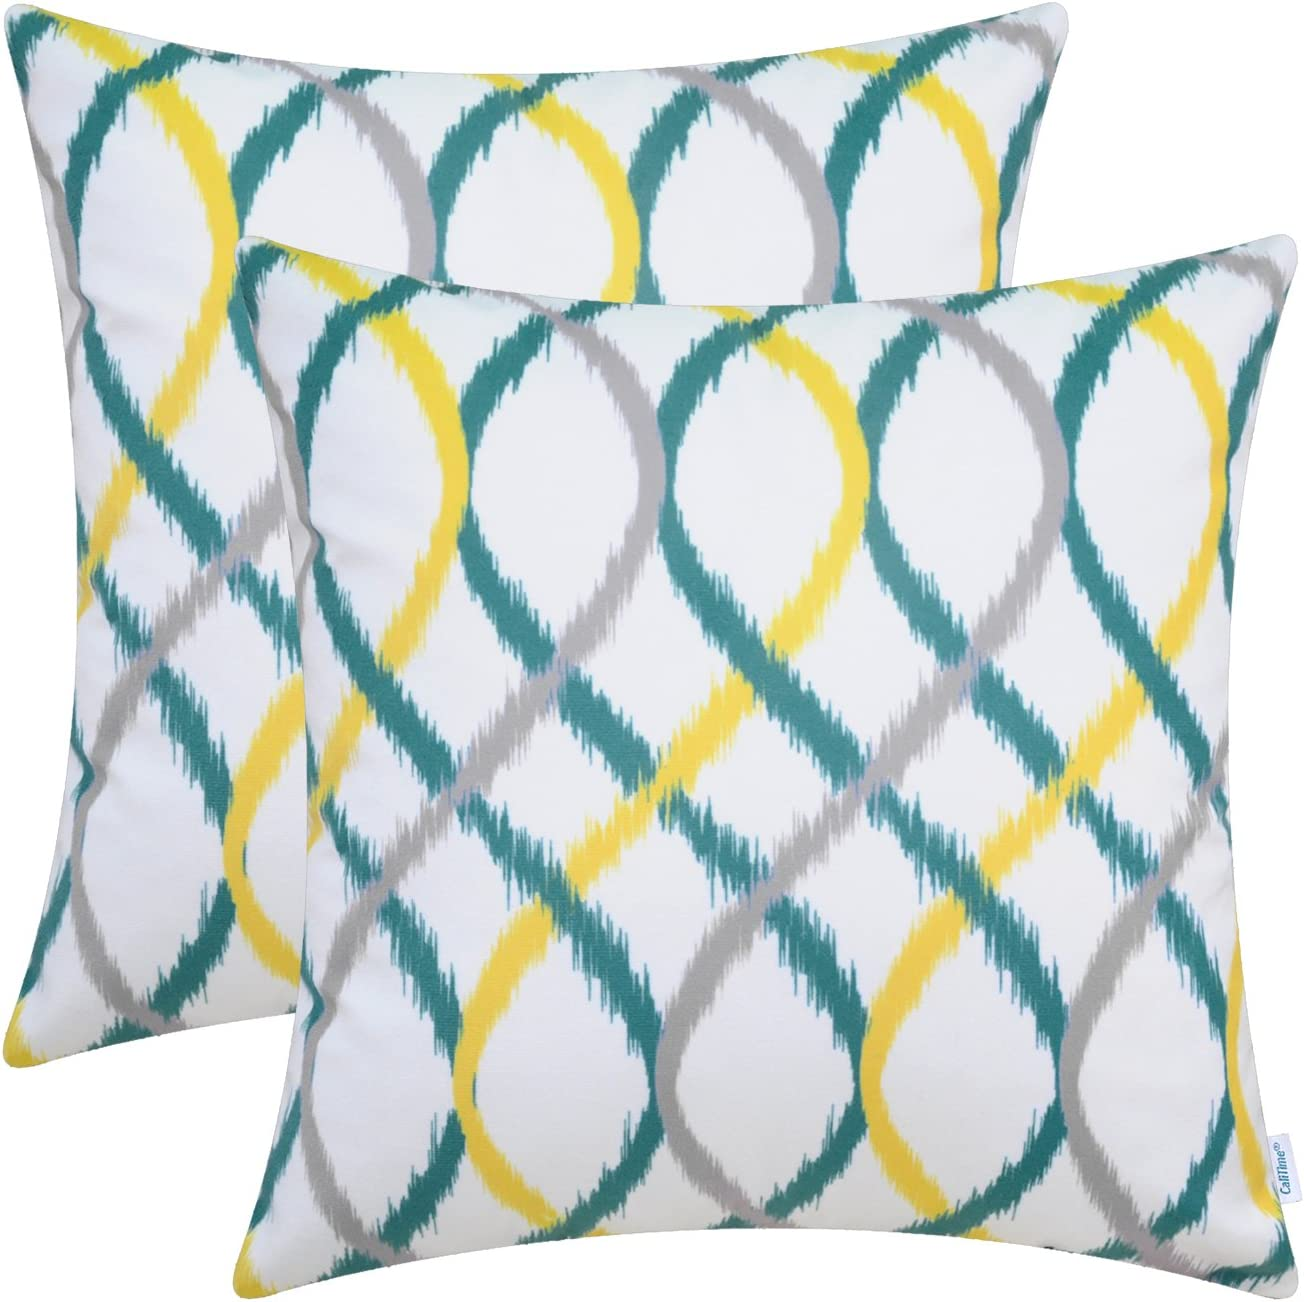 CaliTime Pack of 2 Cozy Fleece Throw Pillow Cases Covers for Couch Bed Sofa Modern Four-Tone Waves Geometric 18 X 18 Inches Gray/Teal/Yellow